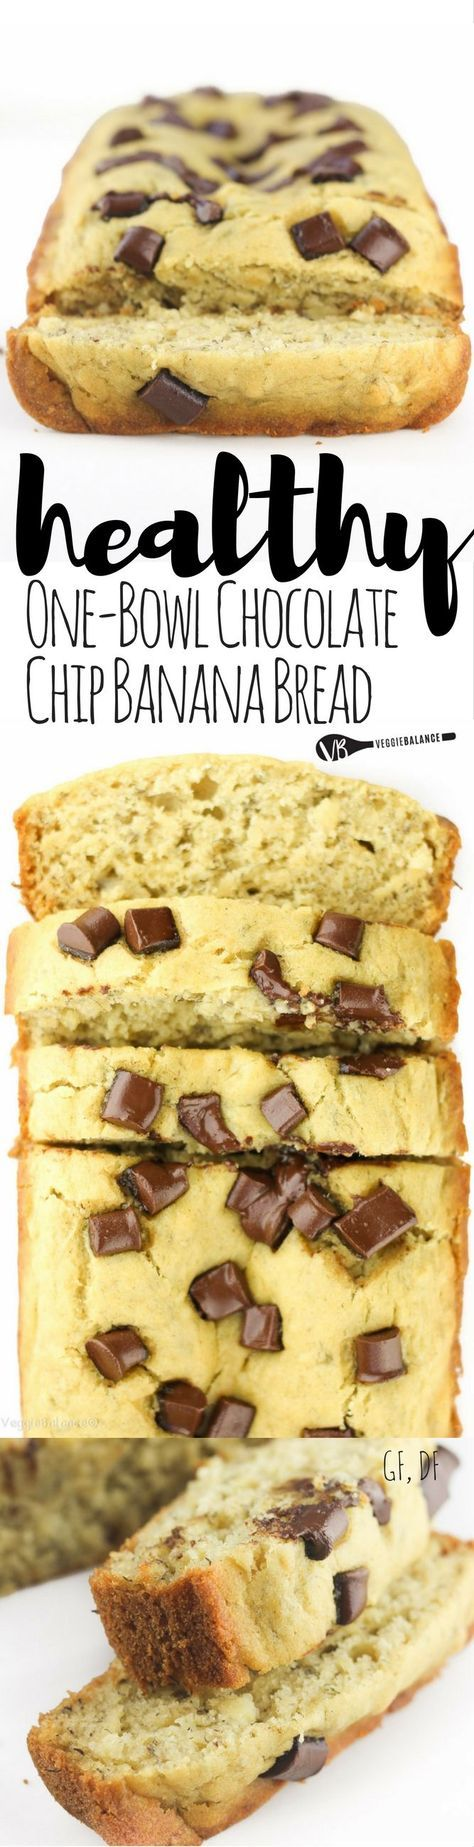 Gluten-Free Chocolate Chip Banana Bread recipe made healthy! The go-to recipe for those weekend mornings. Made healthy with no oil or butter and low-sugar!